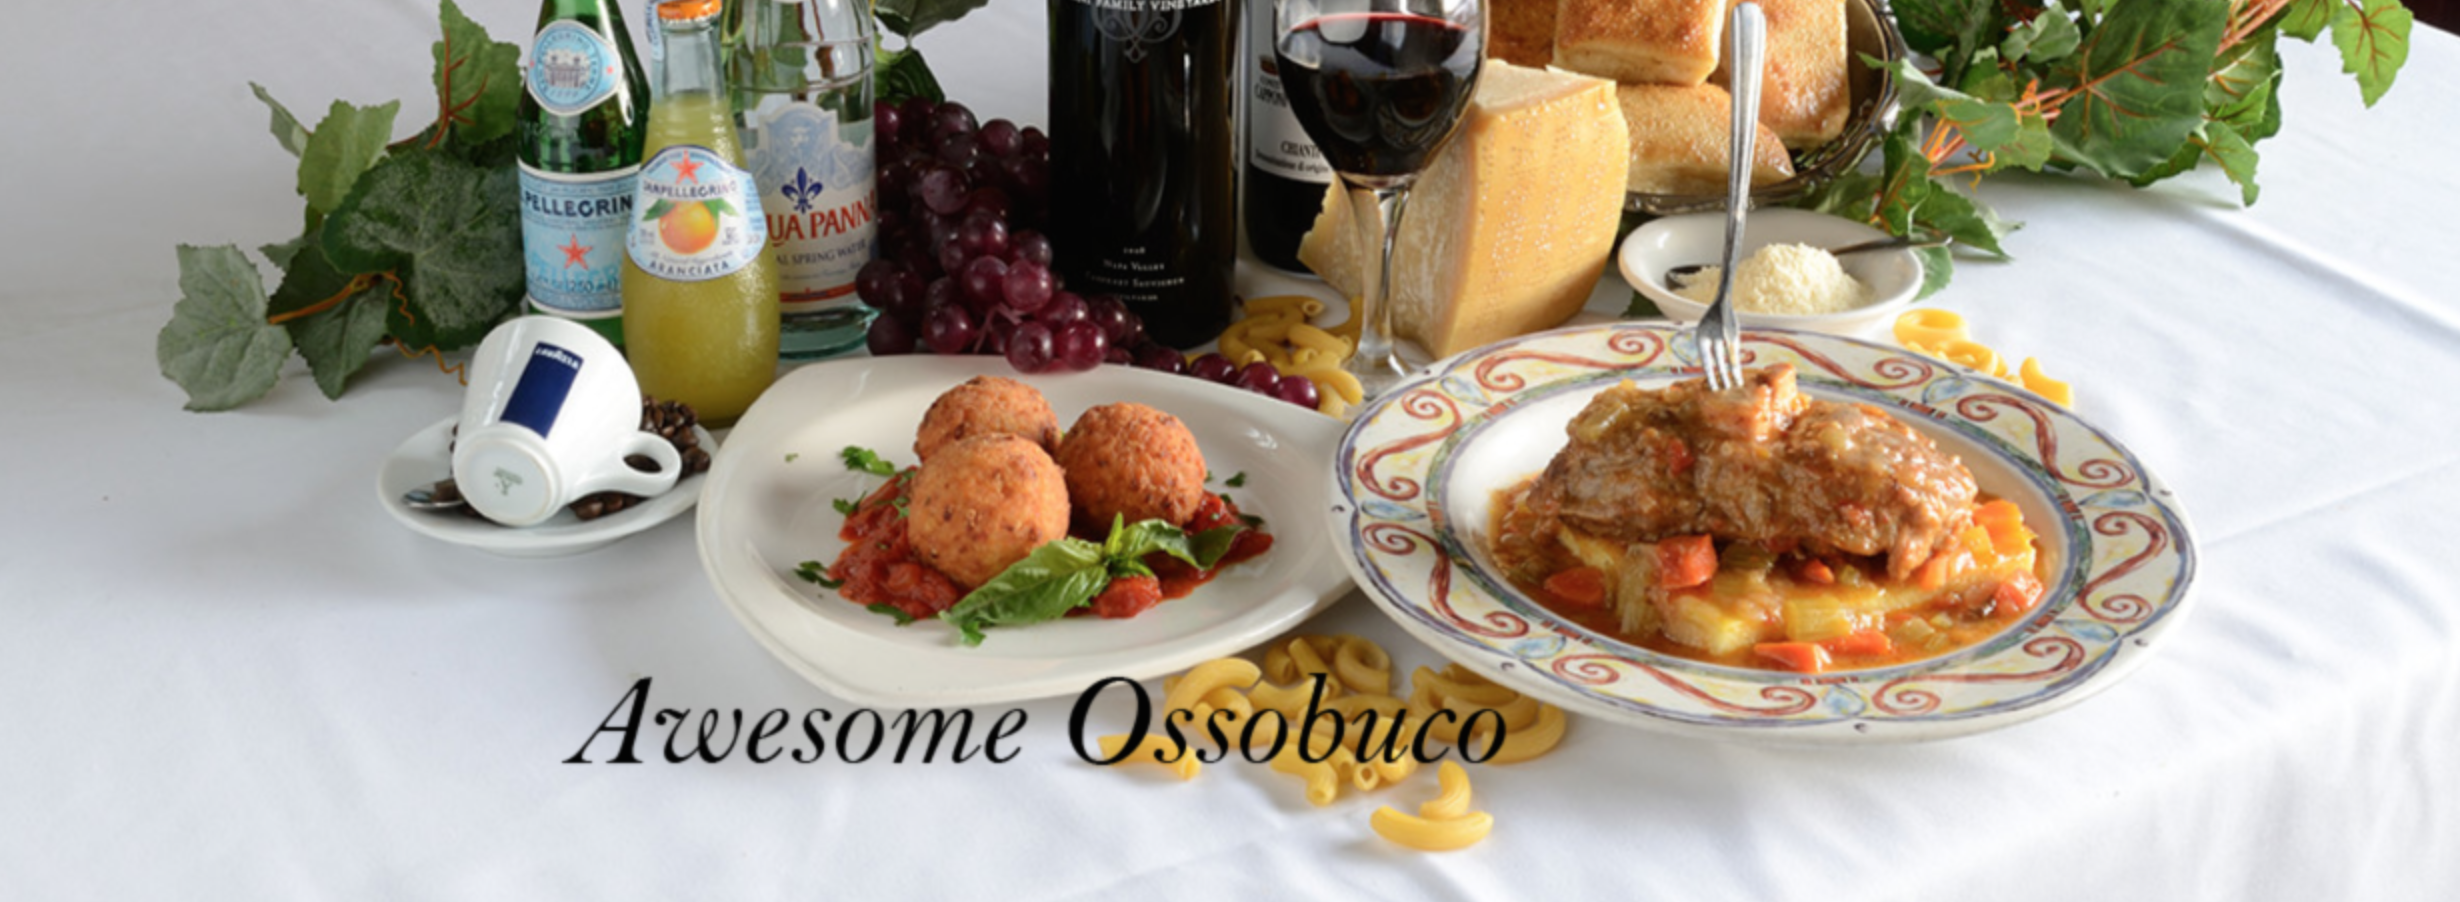 ossobuco.png